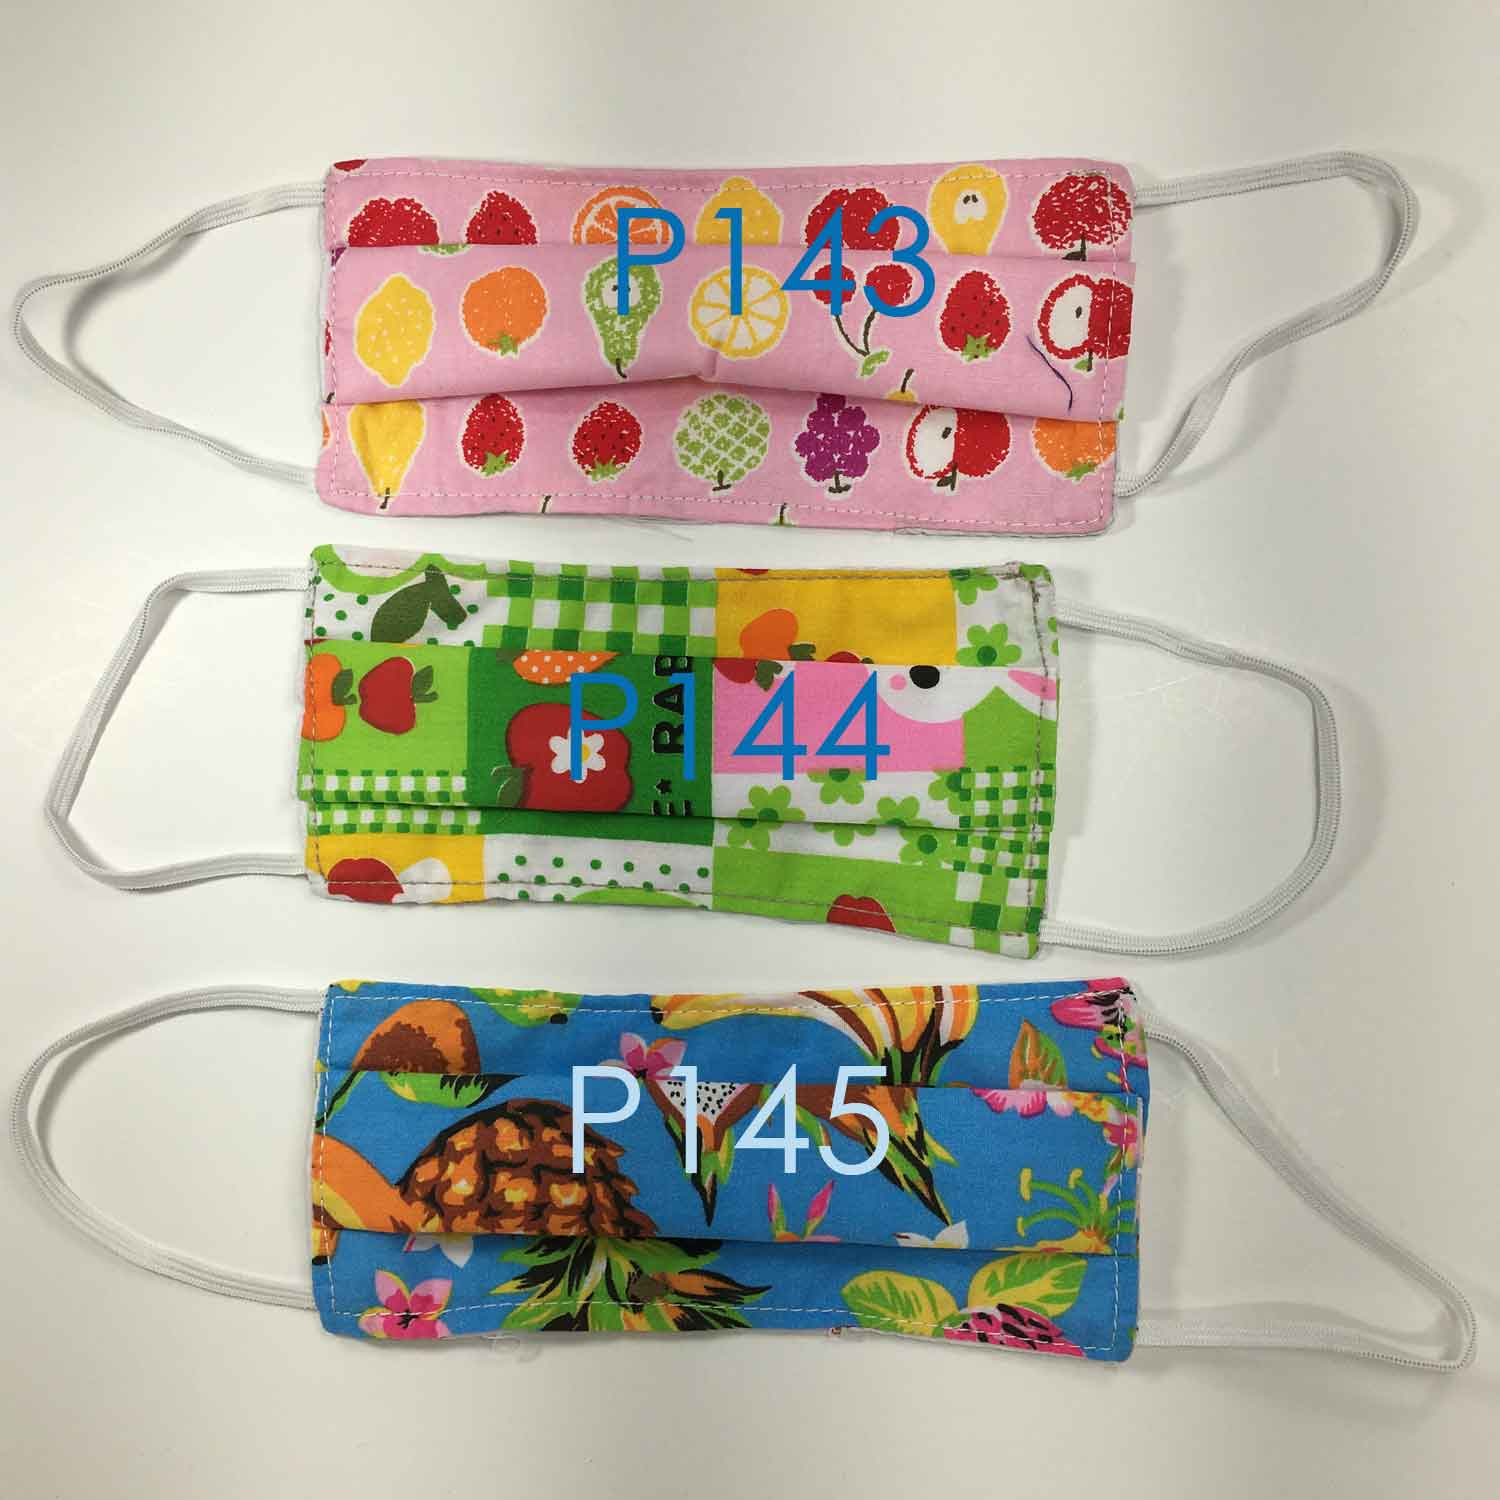 Handmade SMALL KIDS Cloth Face Masks - Pleated - P143-P145